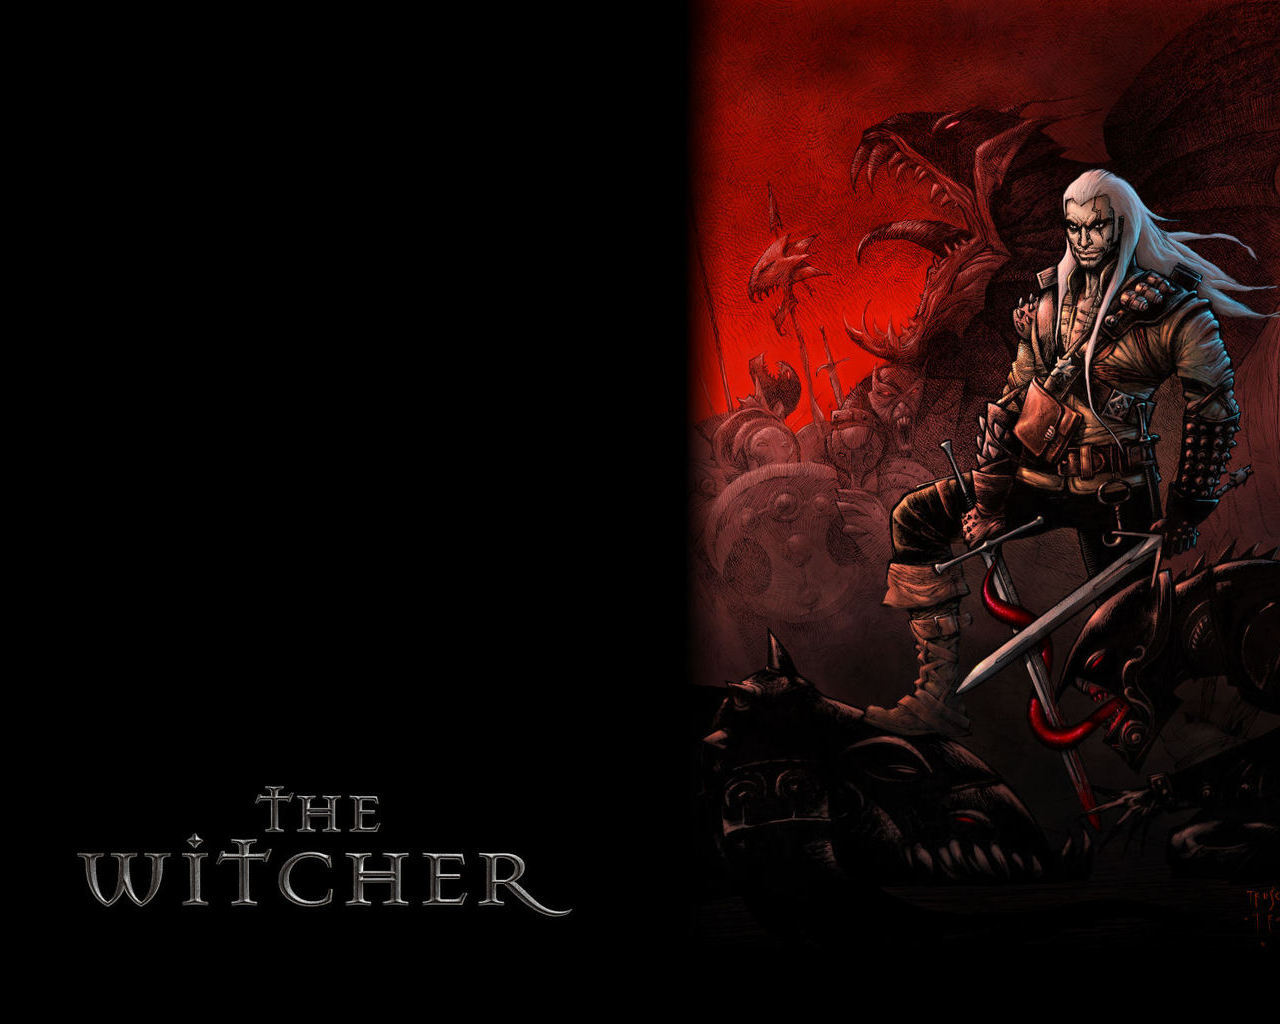 Арт к игре The Witcher